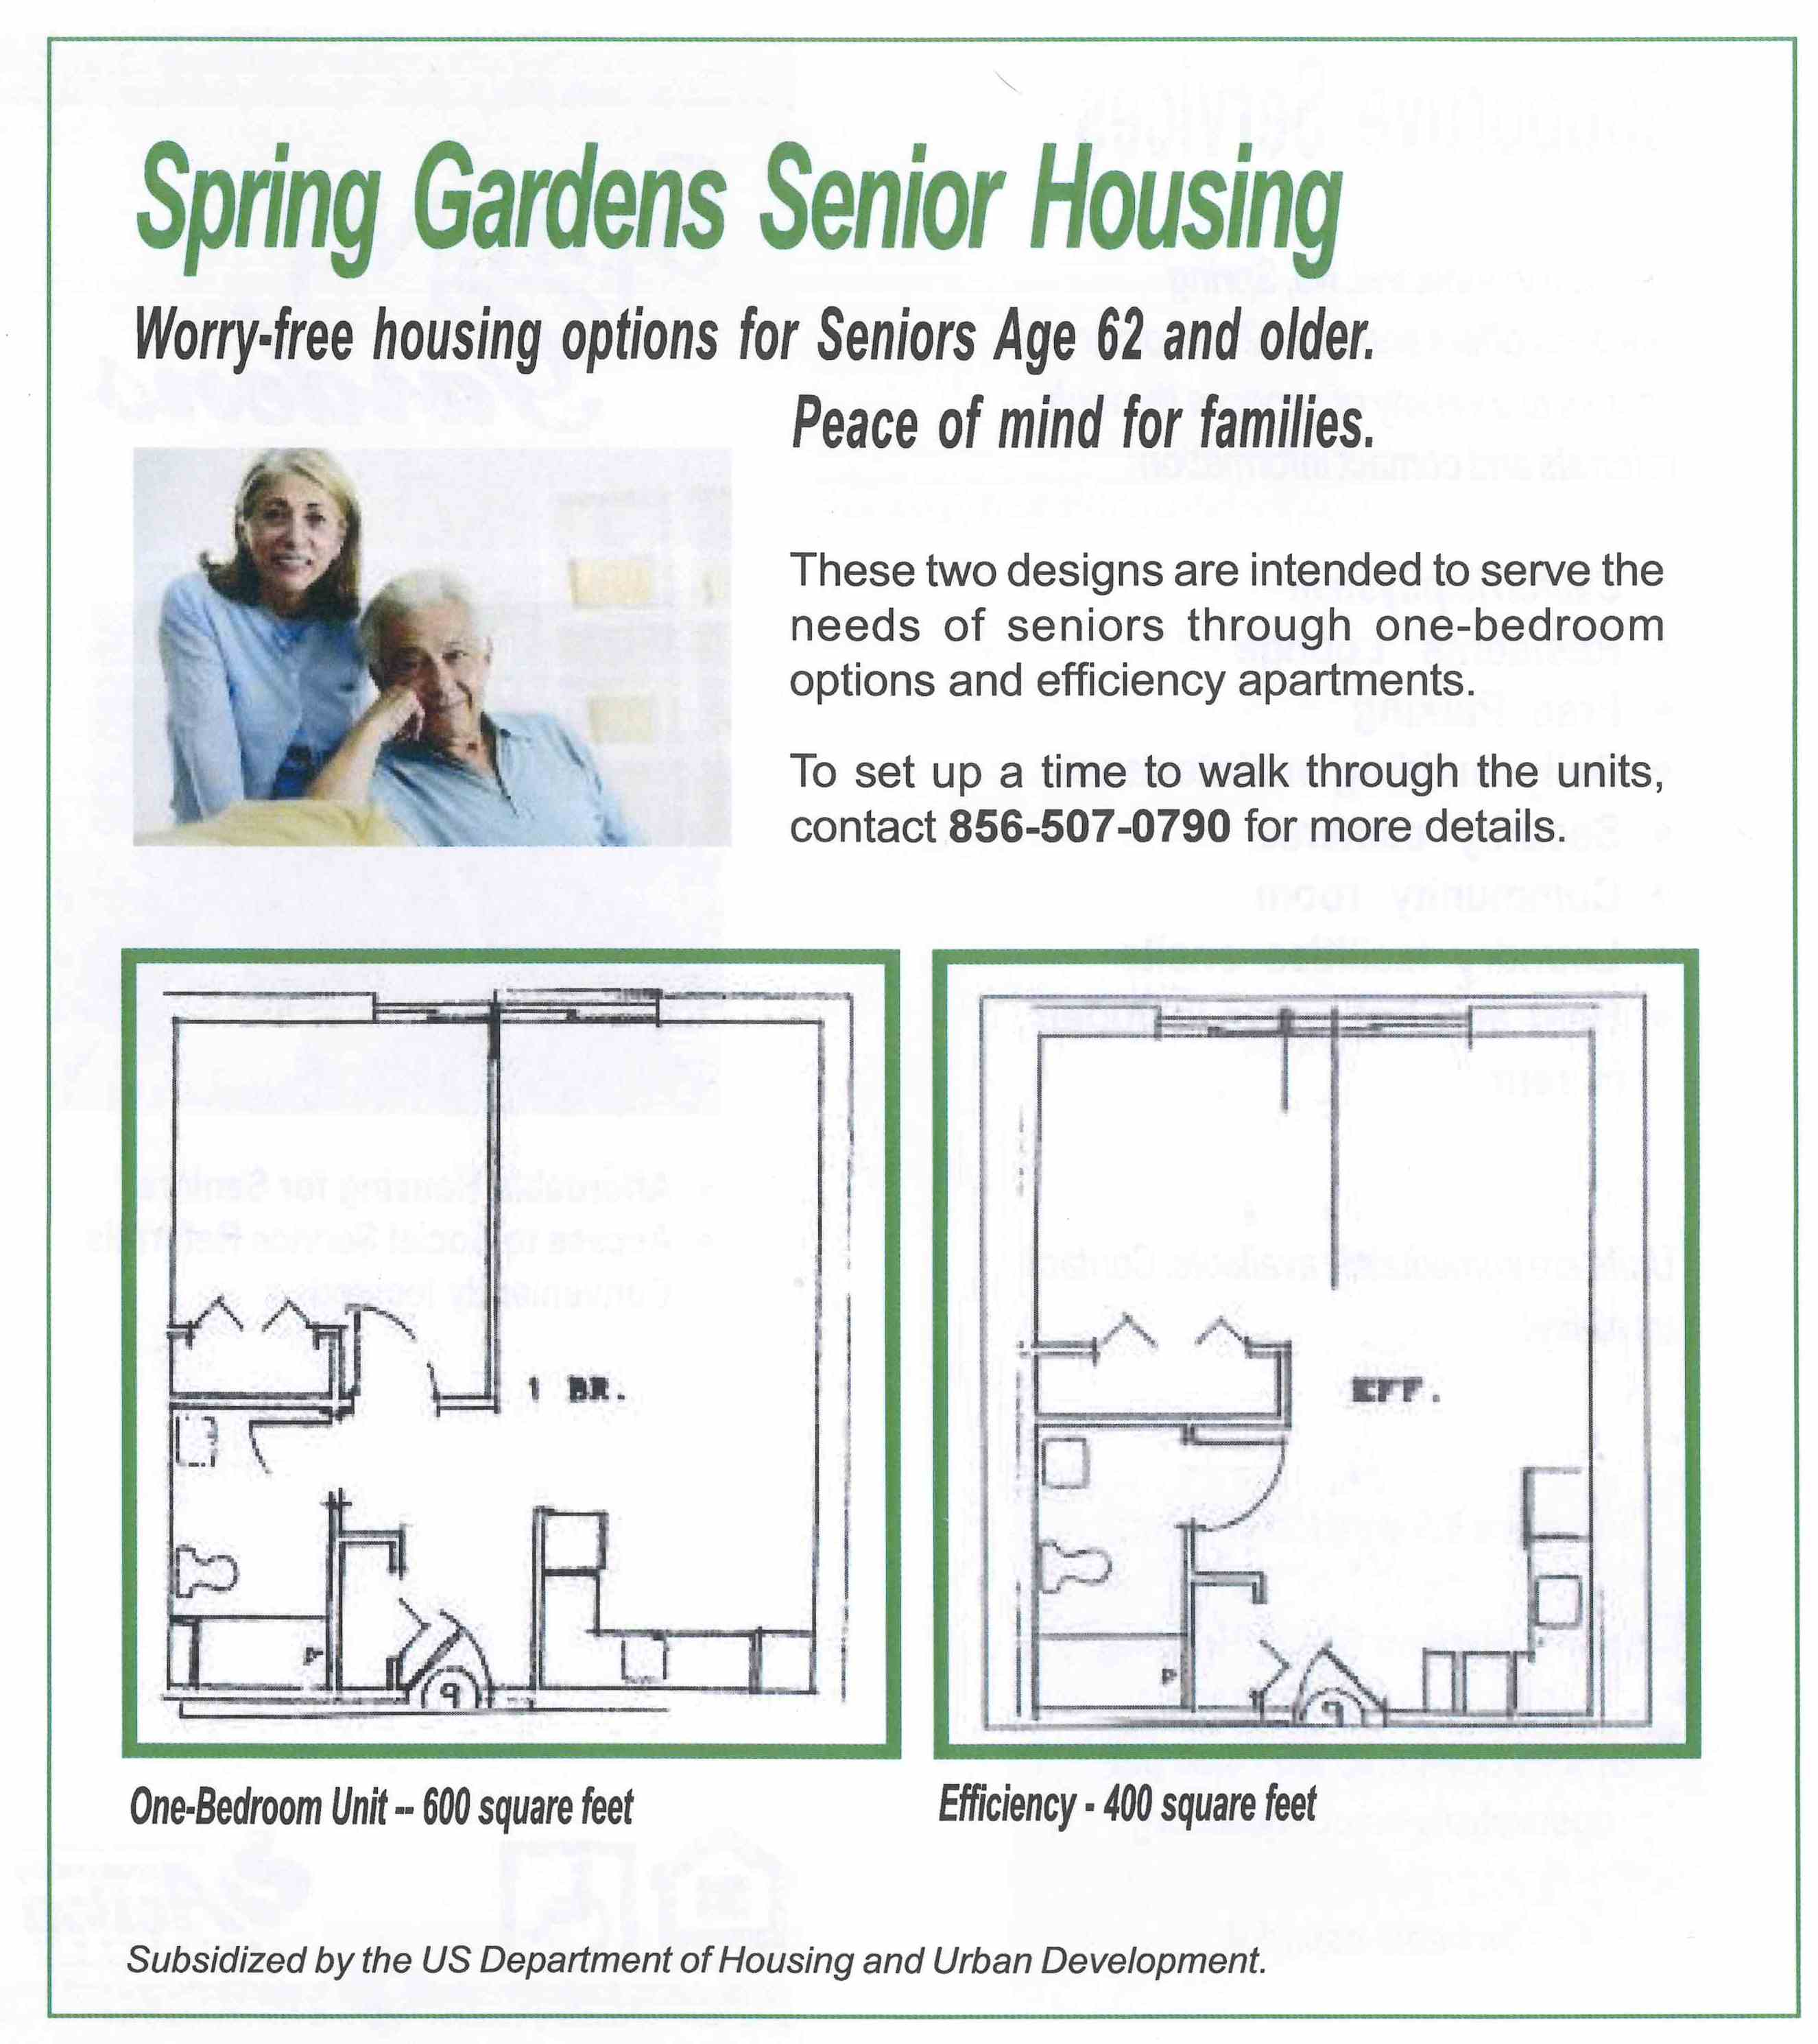 Spring Gardens Senior Housing Gateway Community Action Partnership